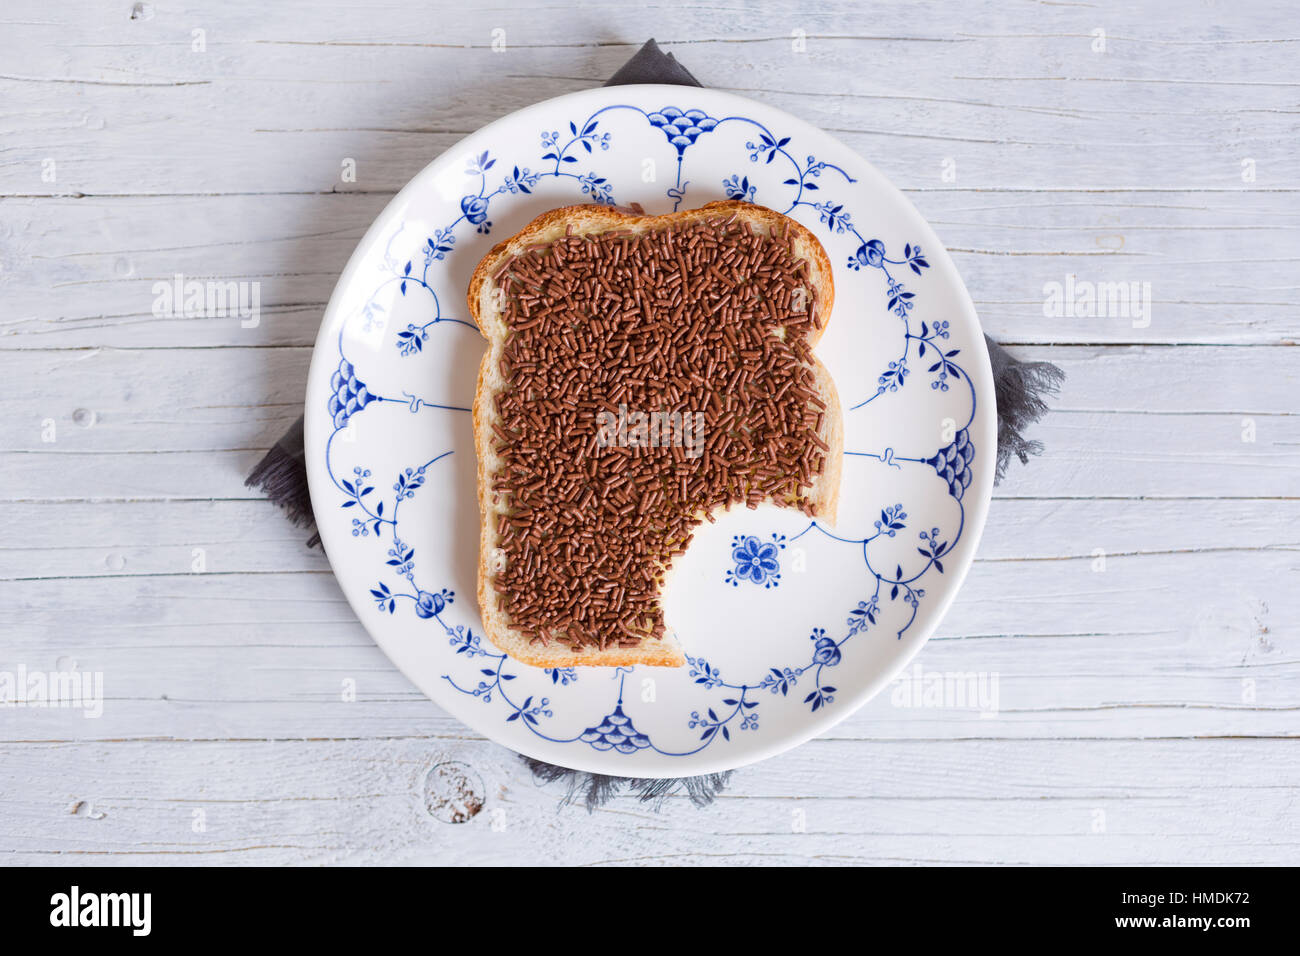 A sandwich with chocolate sprinkles or a 'boterham met hagelslag', Dutch traditional food. - Stock Image